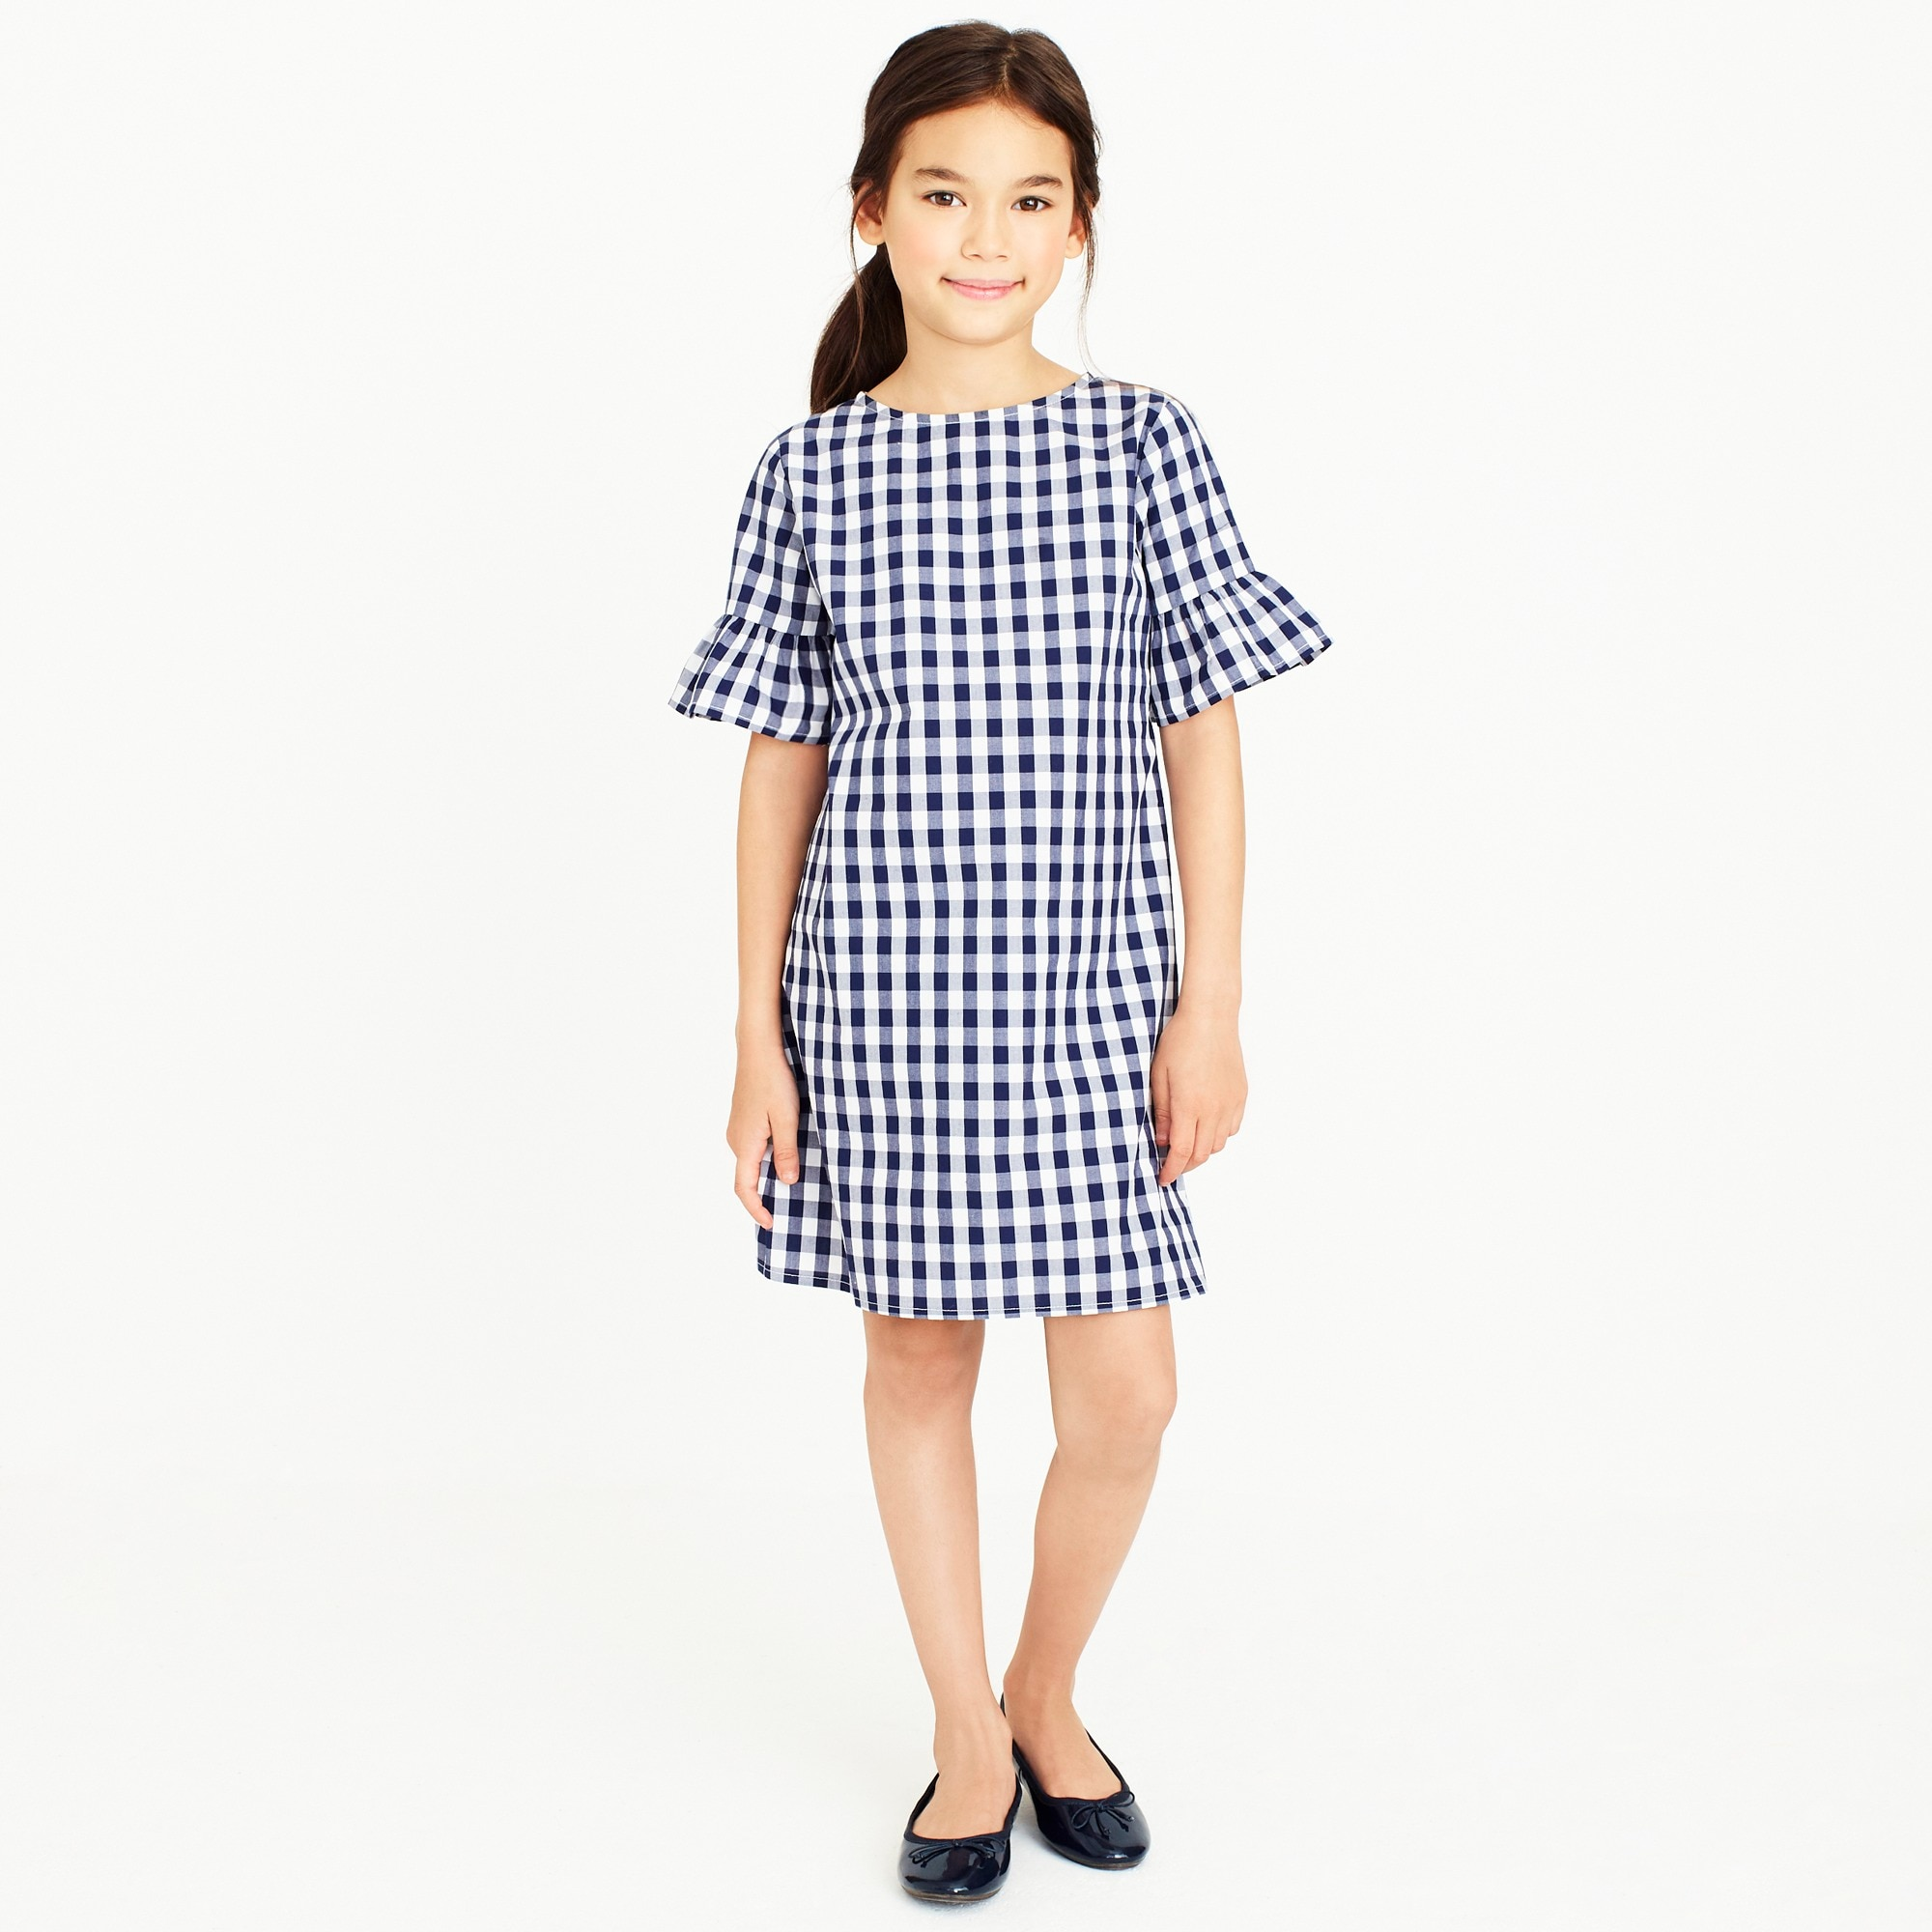 Image 1 for Girls' flutter-sleeve dress in gingham